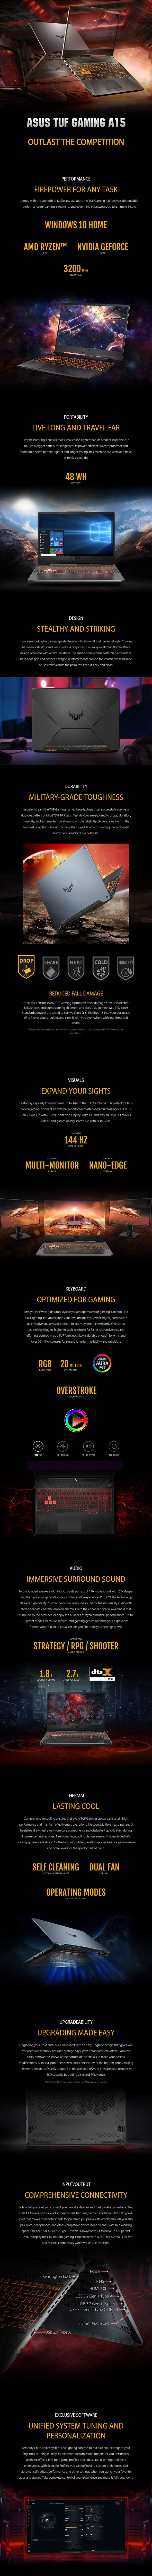 "ASUS TUF Gaming A15 15.6"" 144Hz Gaming Laptop R7-4800H 16GB 512GB RTX2060 W10H  SKU: AC33450  Model No: FA506IV-AL043T - Overview 1"